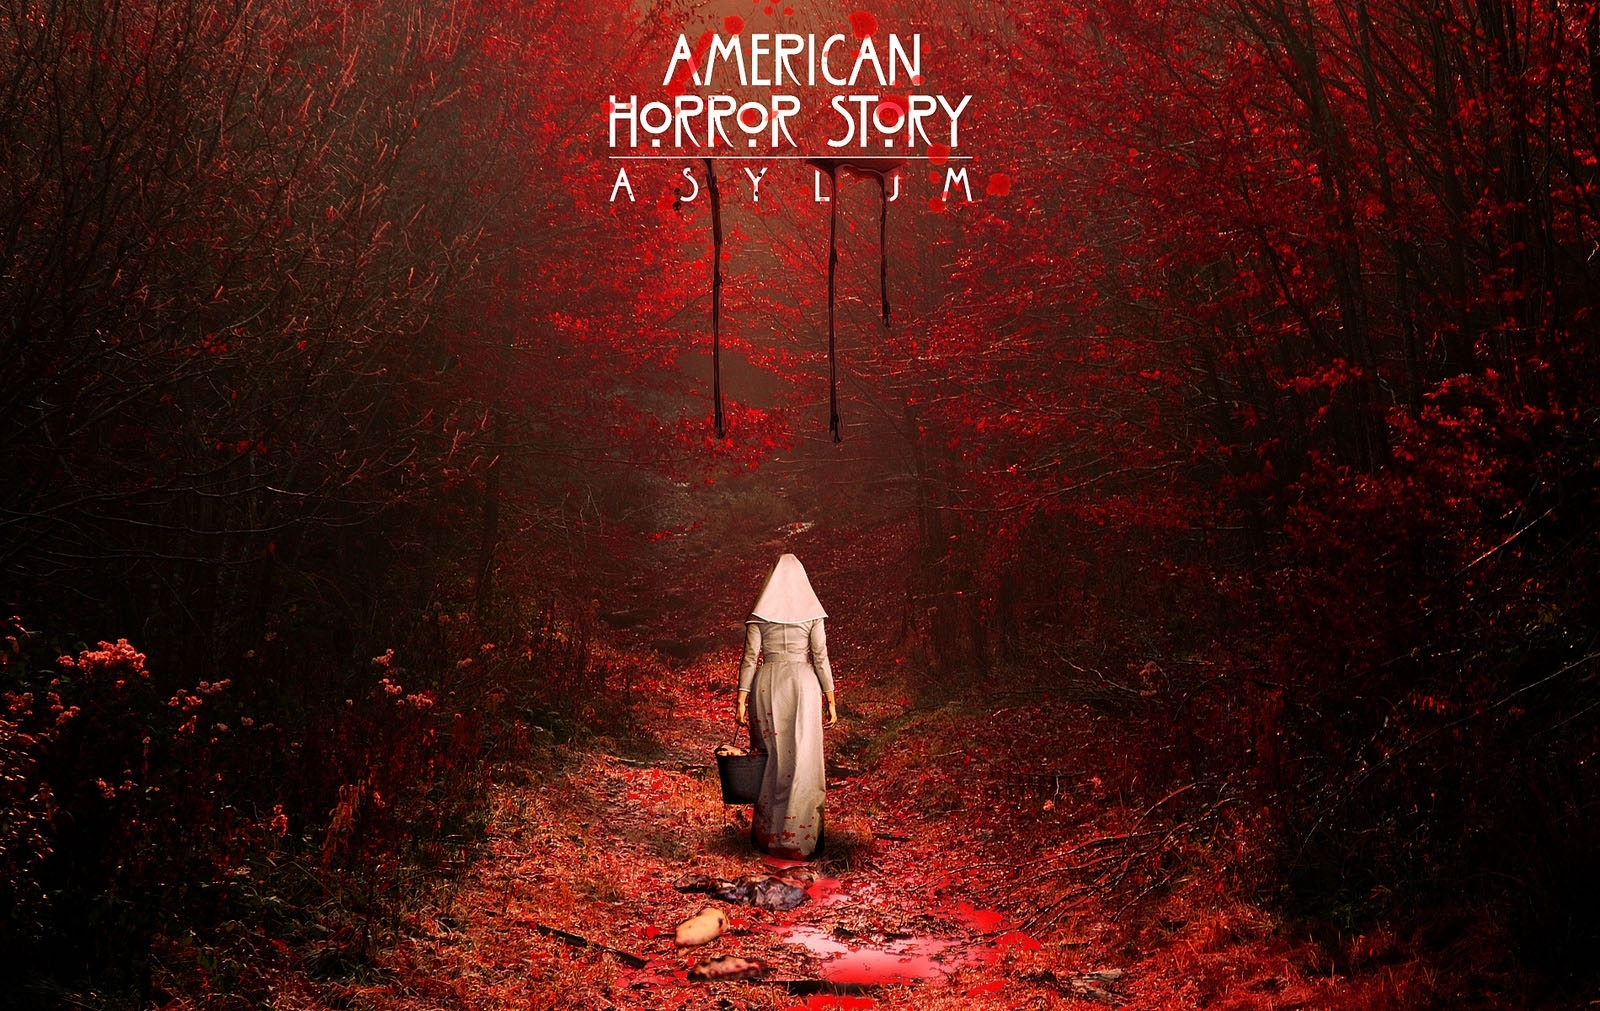 american horror story wallpapers, new hdq american horror story